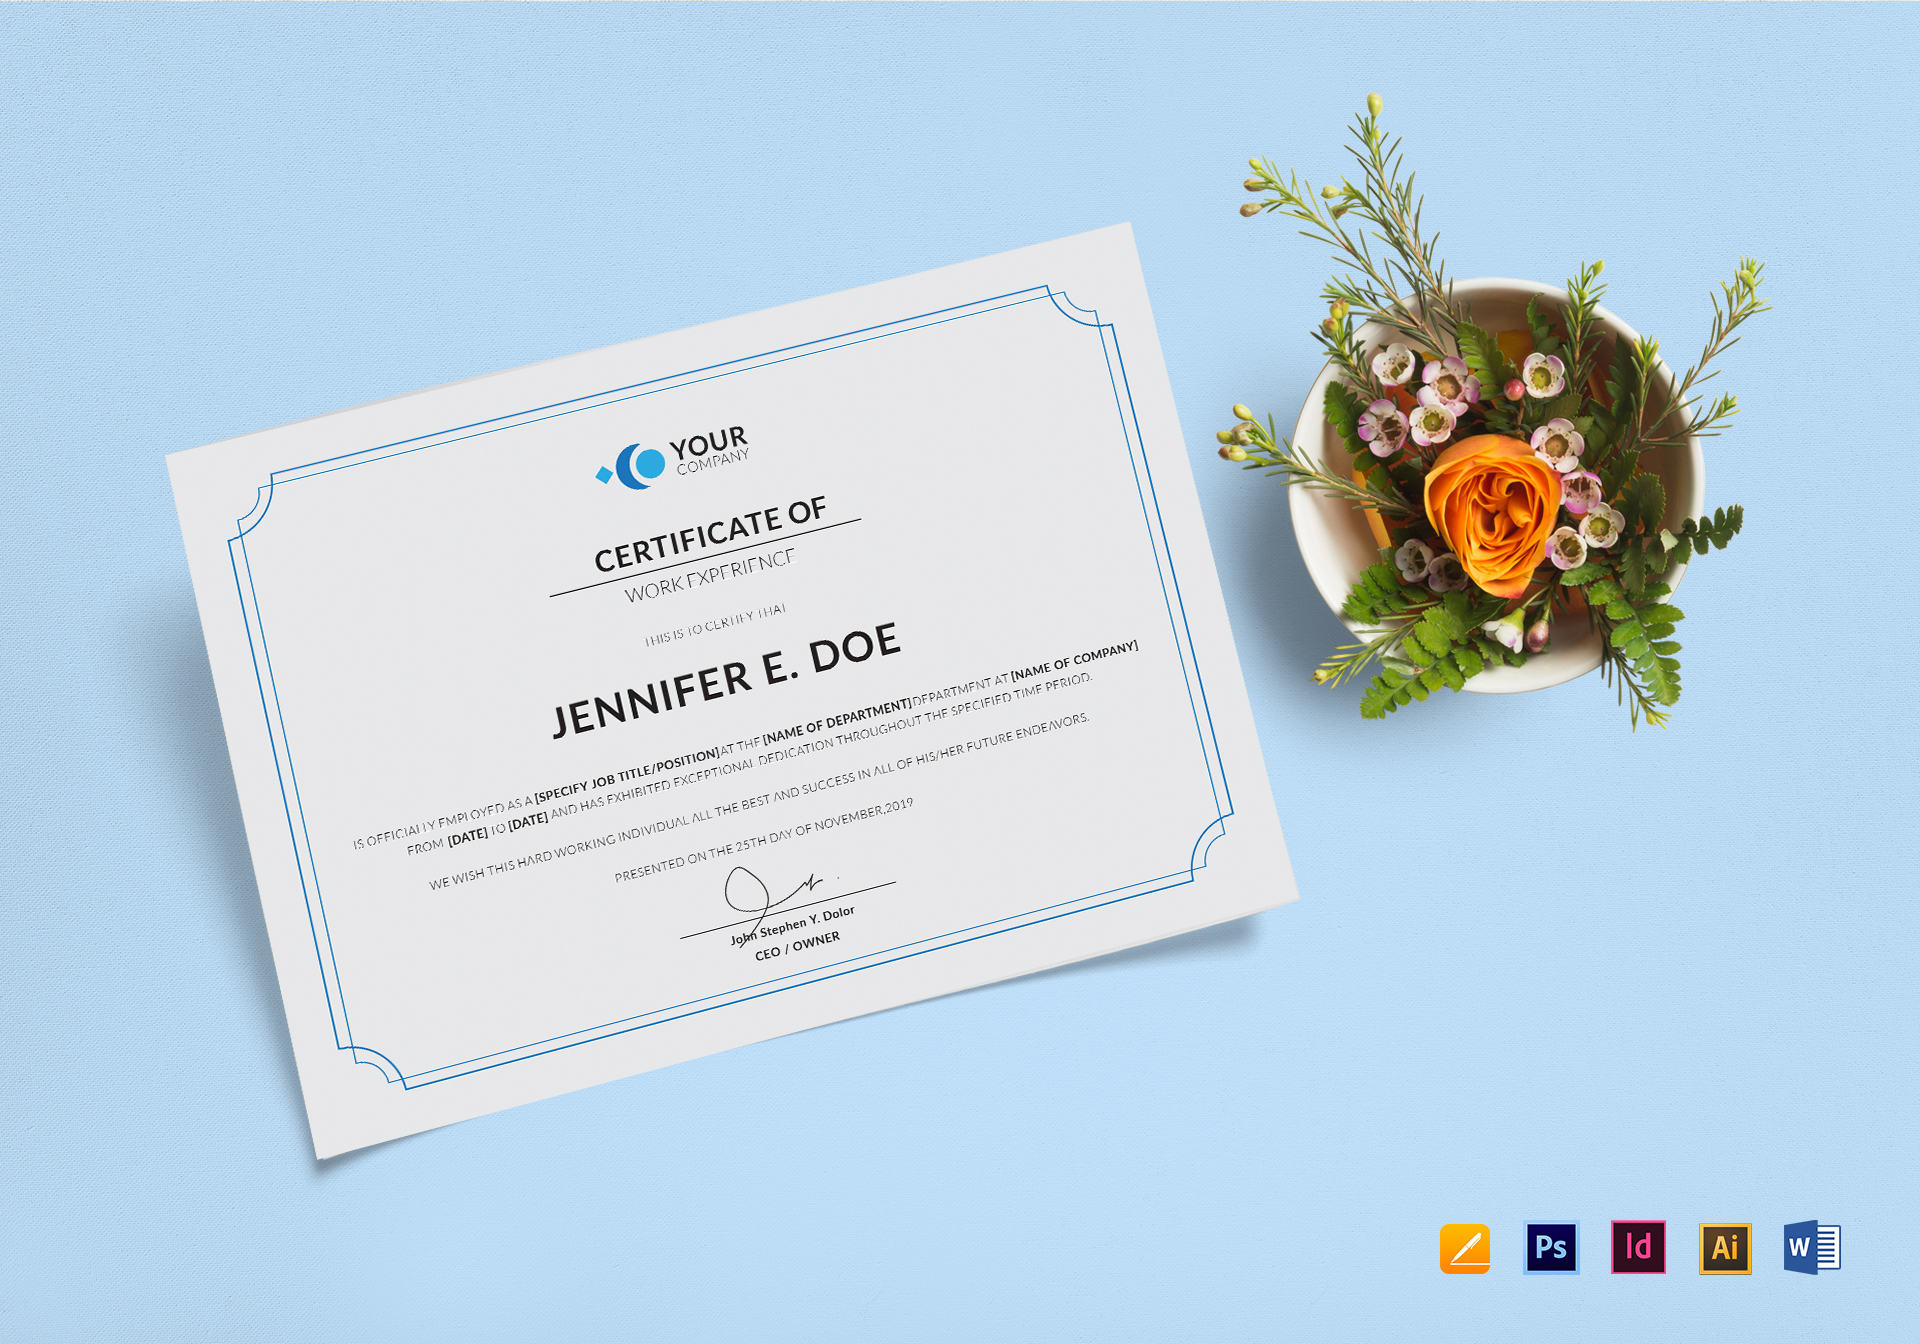 Work Experience Certificate Template In Psd Word Illustrator